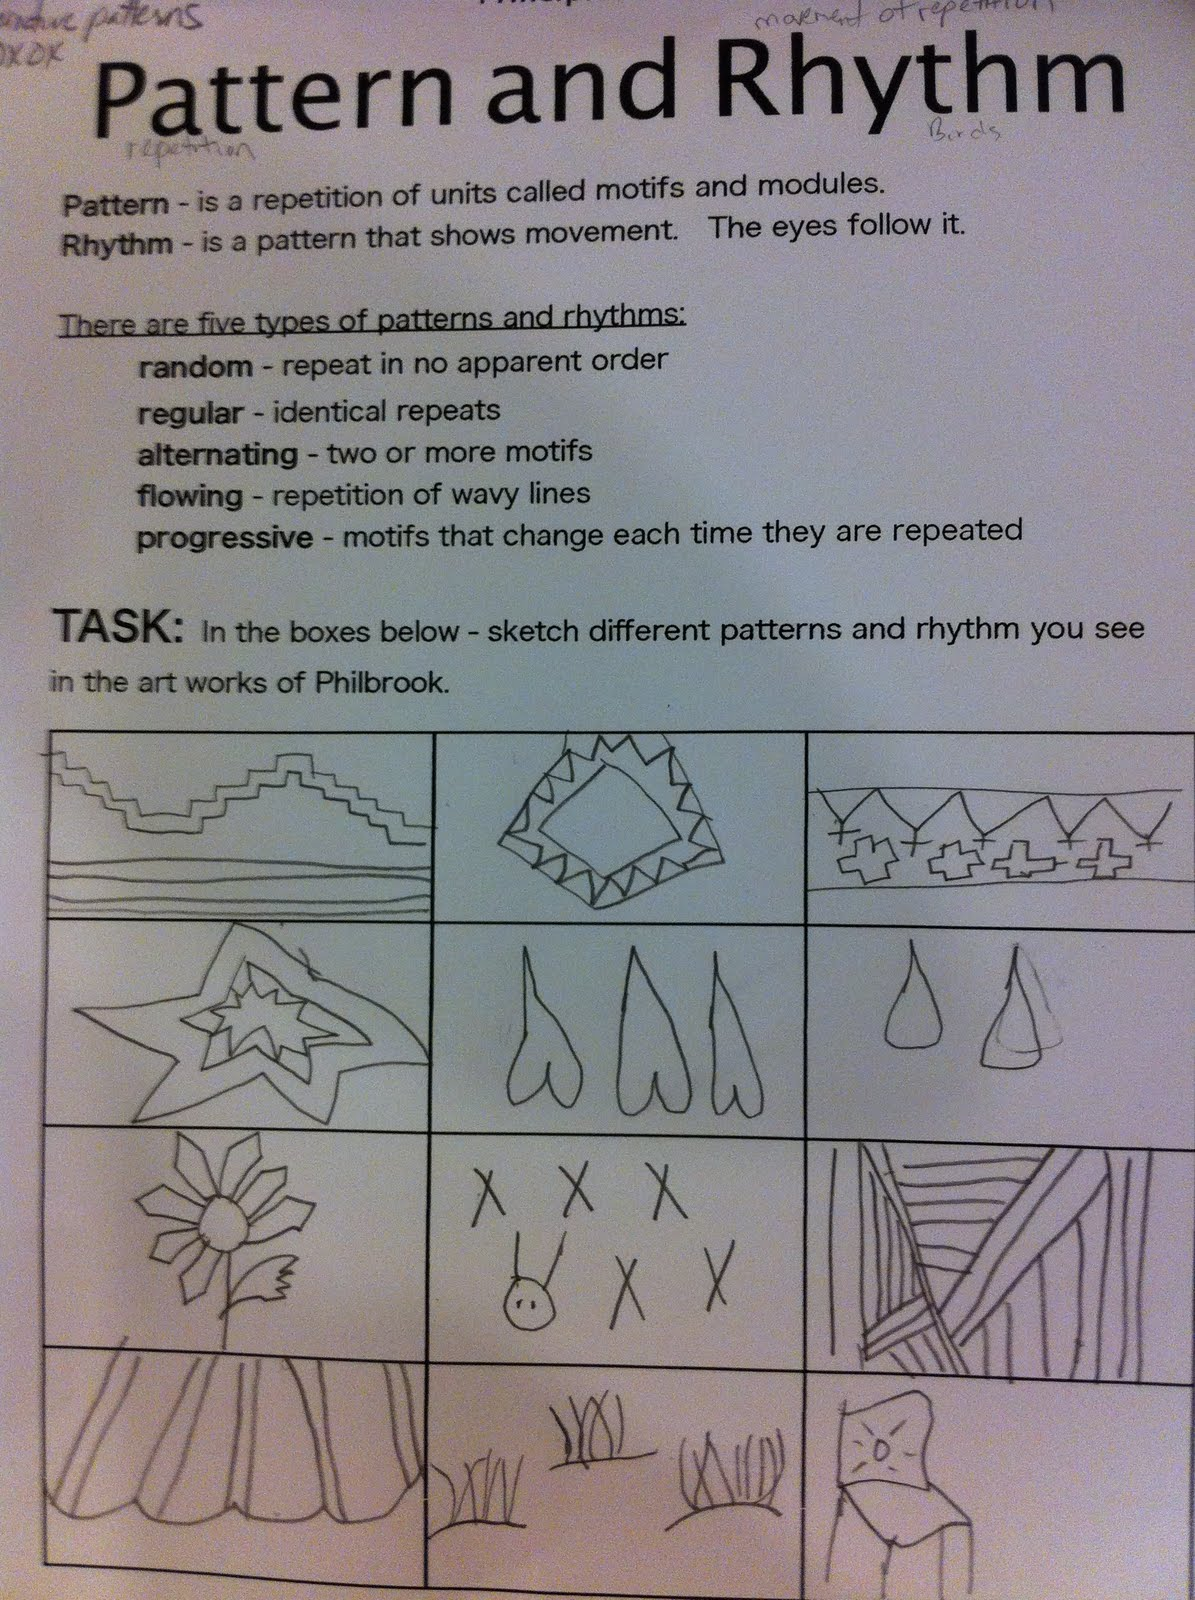 Principles Of Art Rhythm : Patterns and rhythm principles of art fairy dust teaching